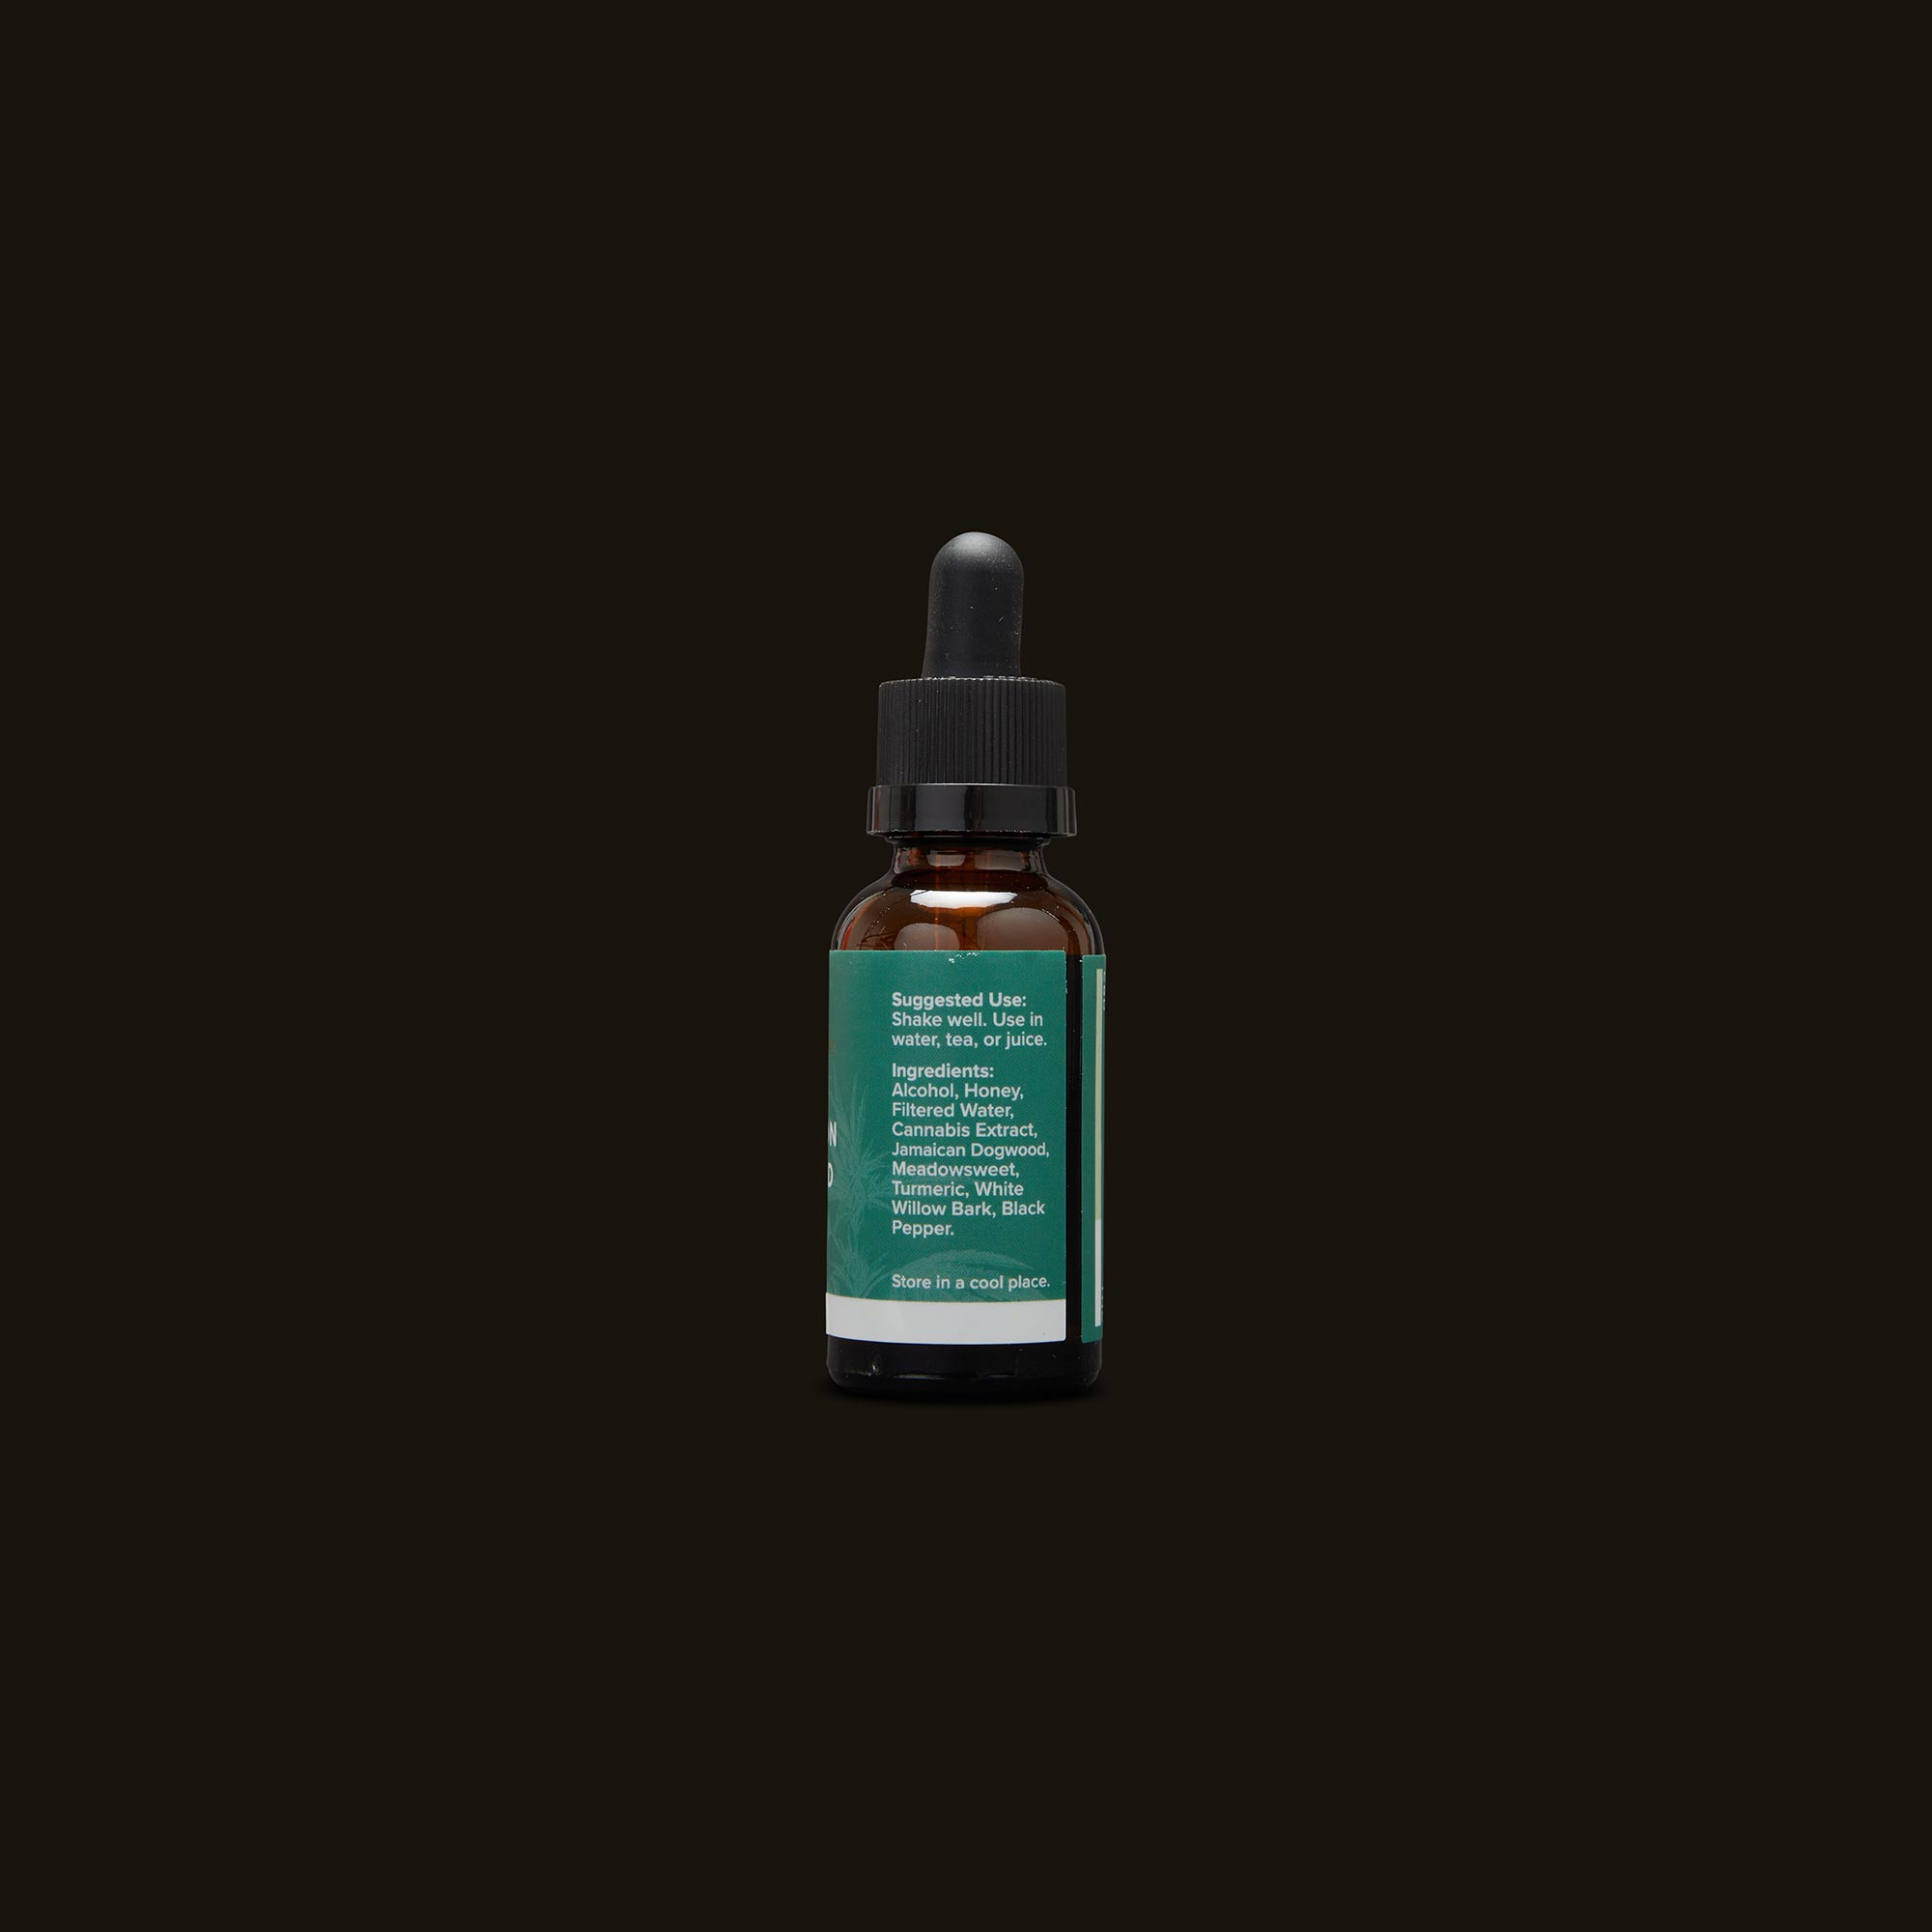 Humboldt Apothecary Inflammation Soother CBD 3:1 Ingredients